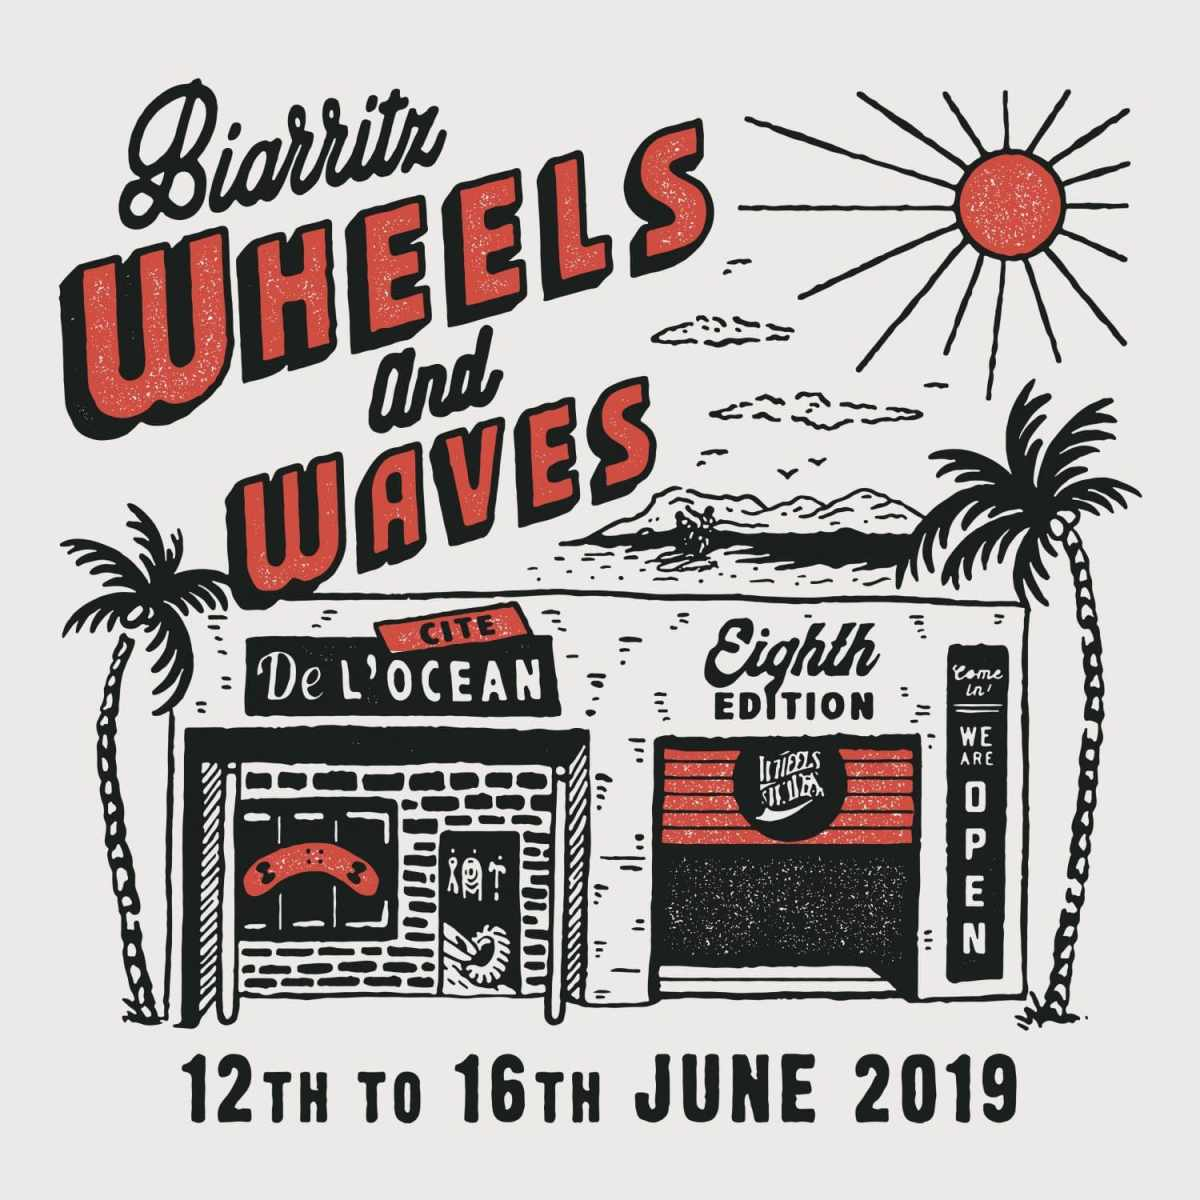 wheels-and-waves-affiche-2019-pays-basque